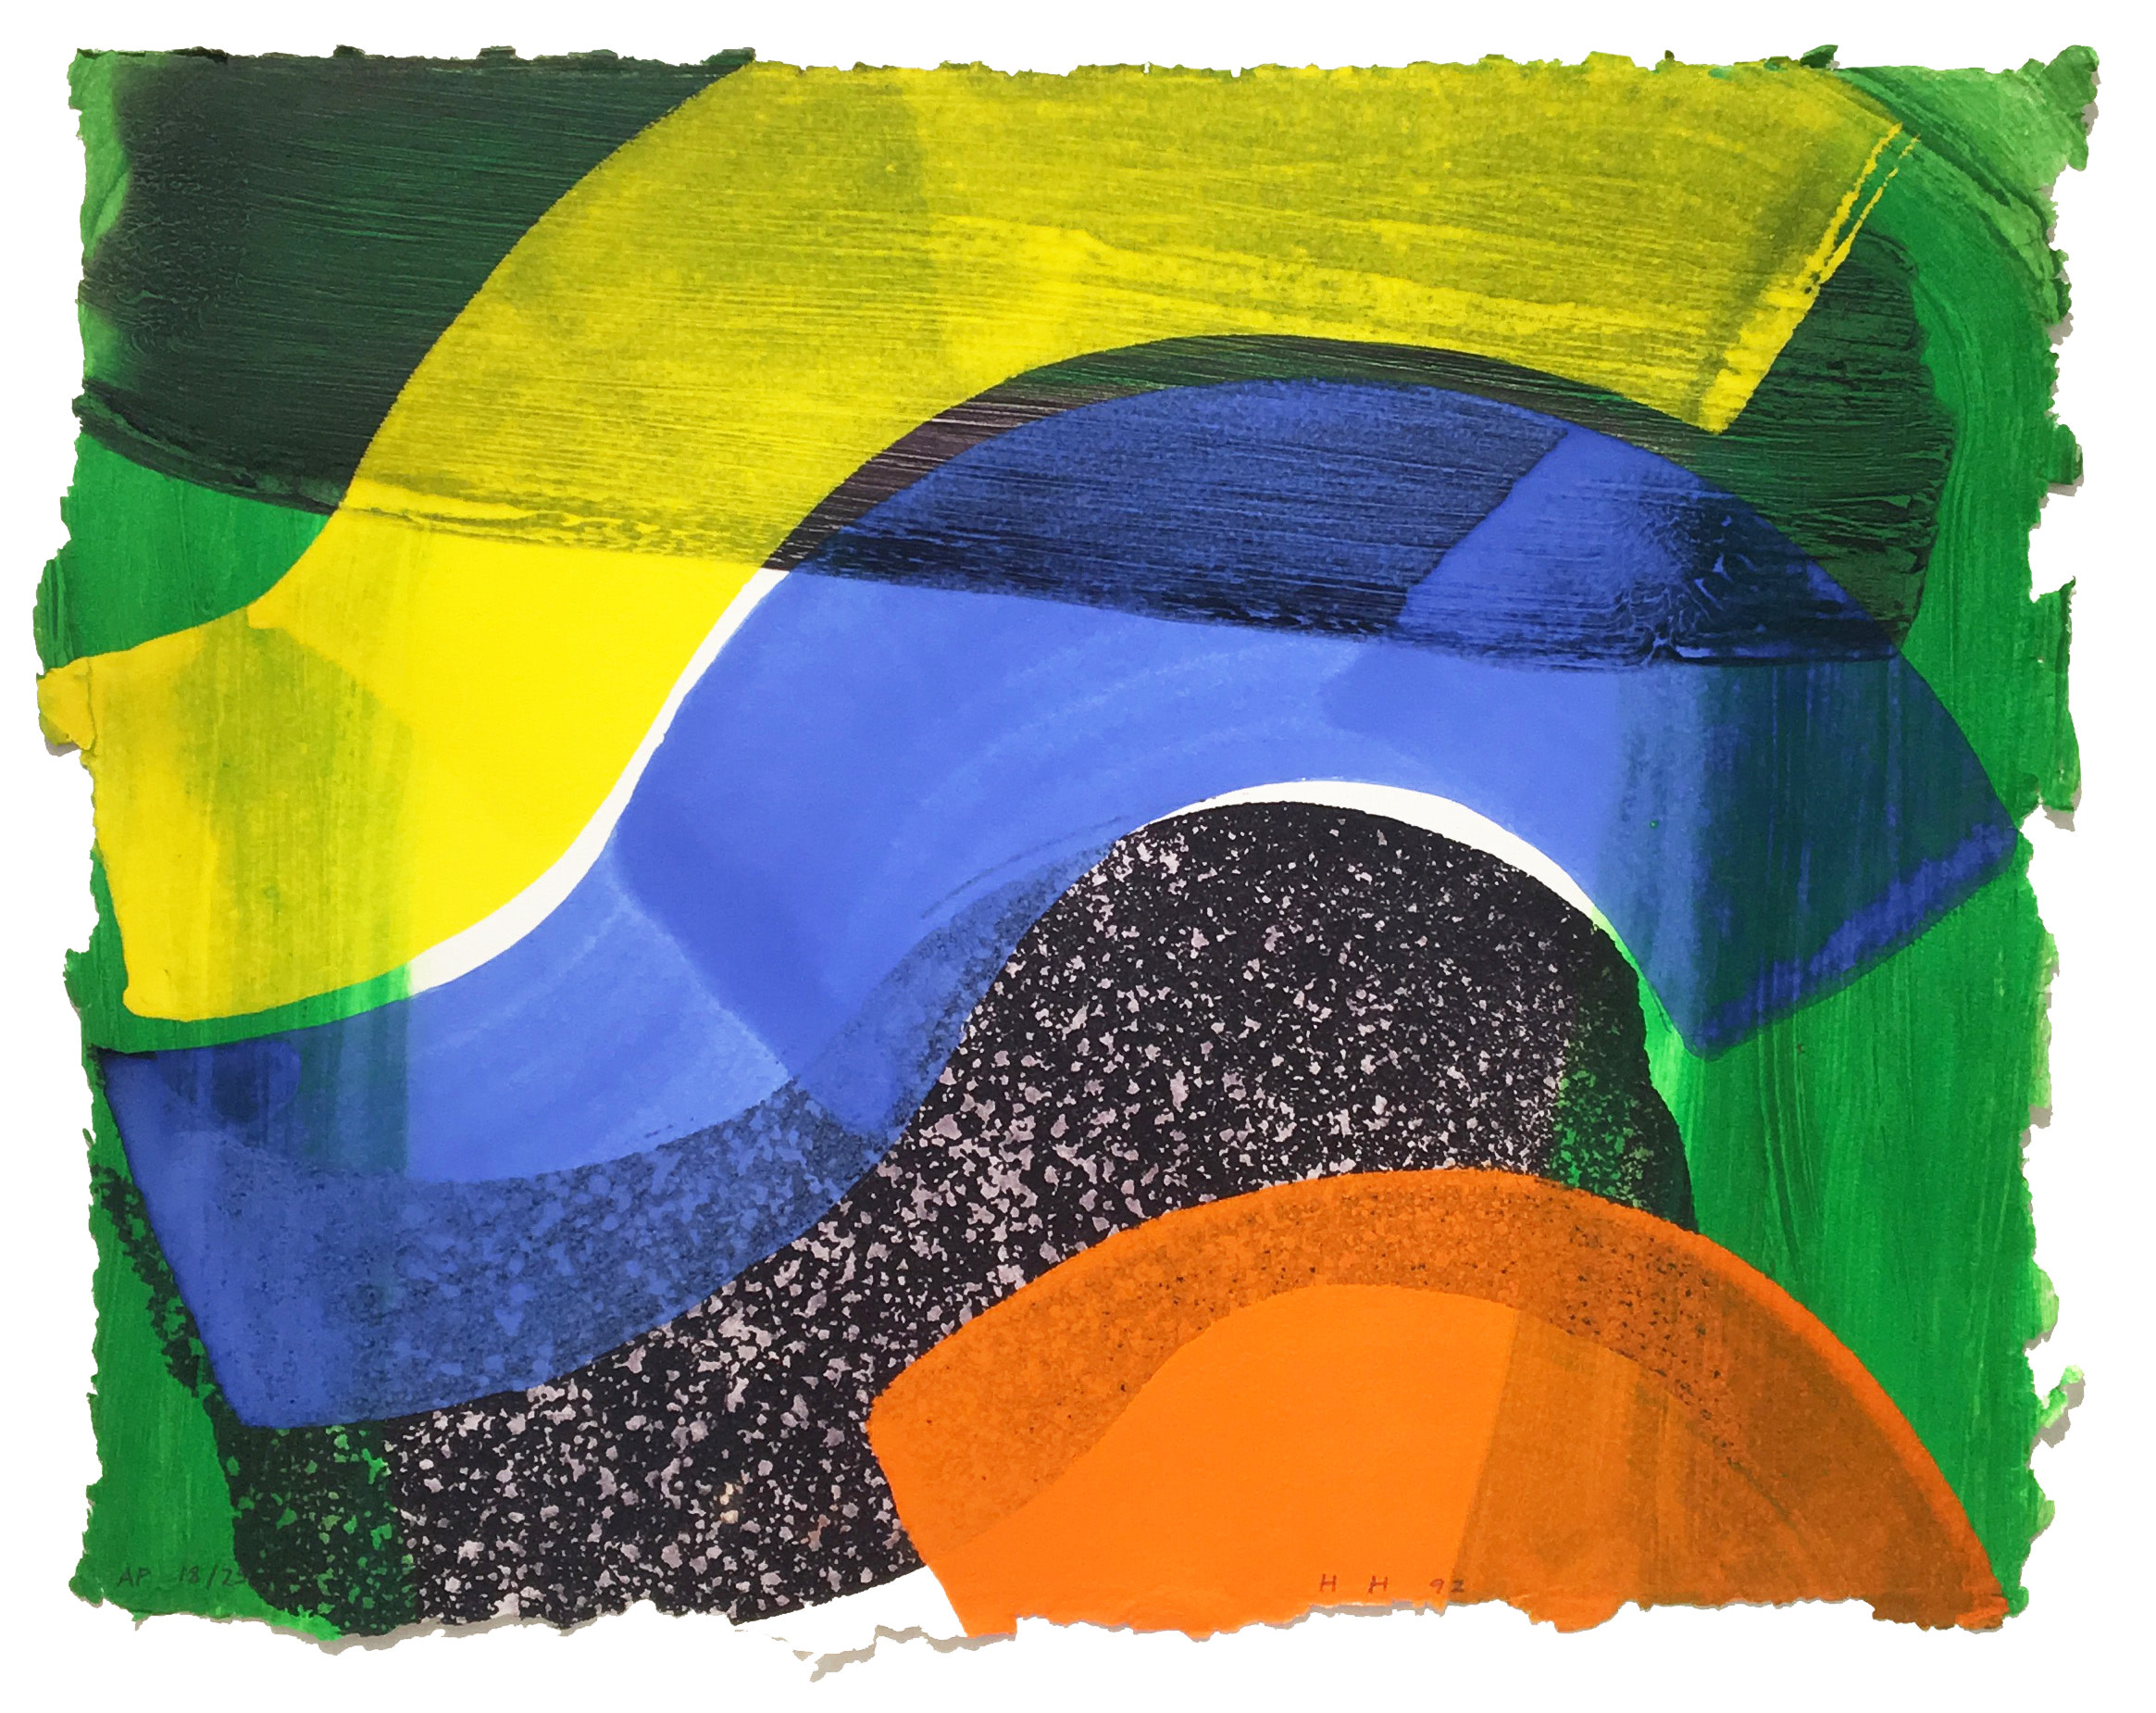 "<span class=""link fancybox-details-link""><a href=""/artists/76-howard-hodgkin/works/989/"">View Detail Page</a></span><div class=""artist""><strong>Howard Hodgkin</strong></div> 1932 - 2017 <div class=""title""><em>Put Out More Flags</em>, 1992</div> <div class=""signed_and_dated"">signed with initials and dated in pencil in lower centre<br /> from the edition of 75 with XXV artist's proofs</div> <div class=""medium"">Lift-ground etching and aquatint</div> <div class=""dimensions"">42 x 52.4cm</div><div class=""copyright_line"">Copyright The Artist</div>"